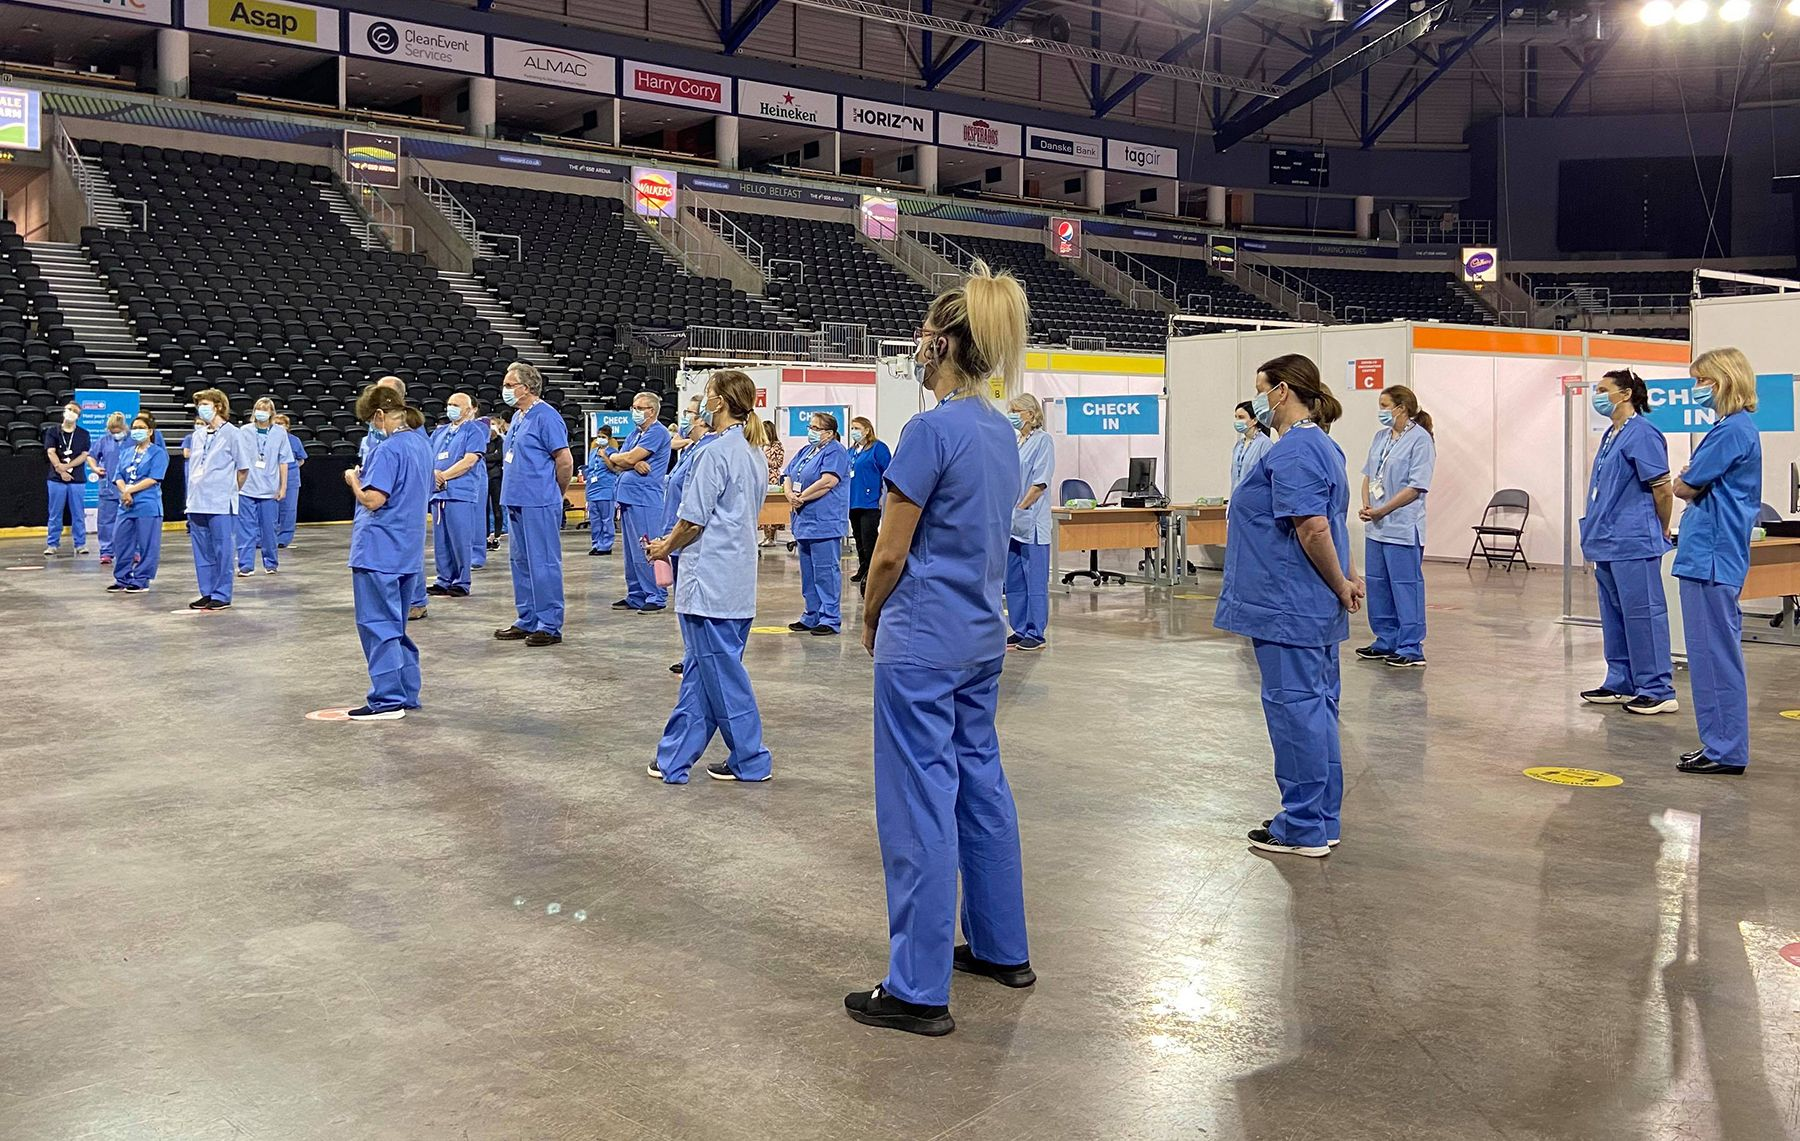 PROGRESS: Clinicians at the SSE Arena prepare to open for vaccinations on Monday morning